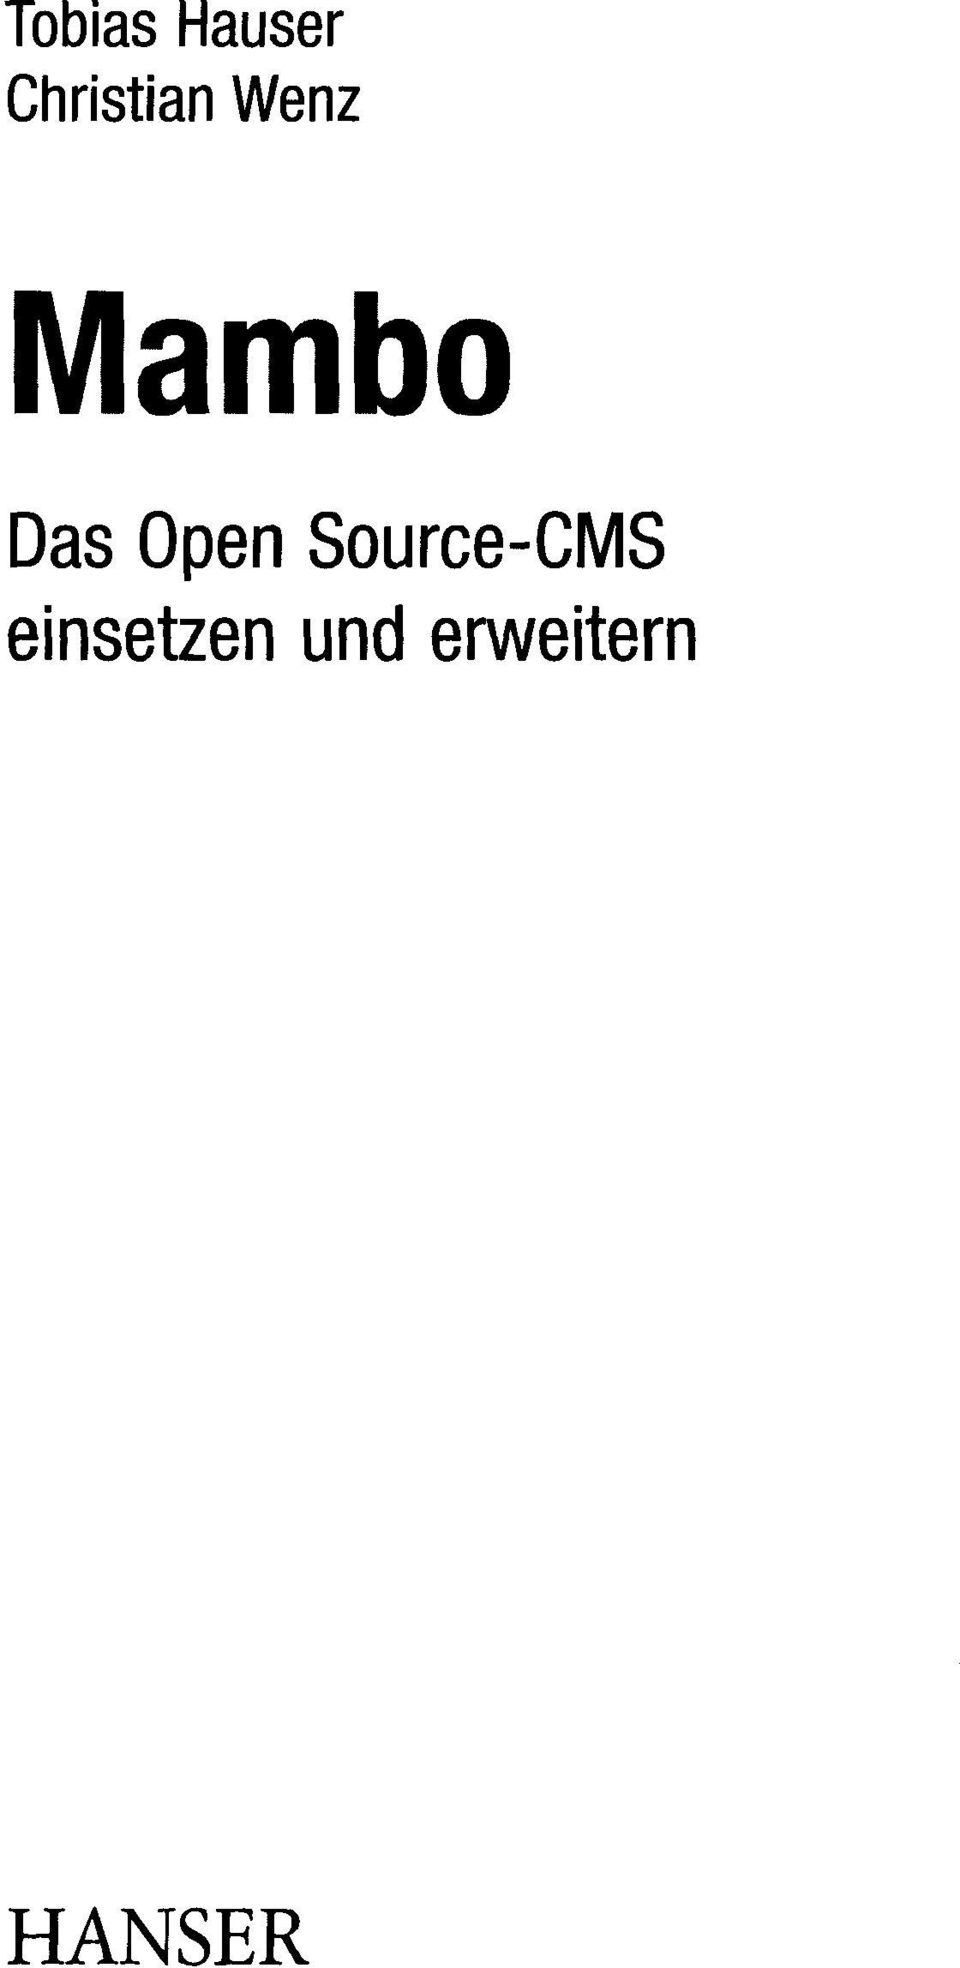 Das Open Source-CMS